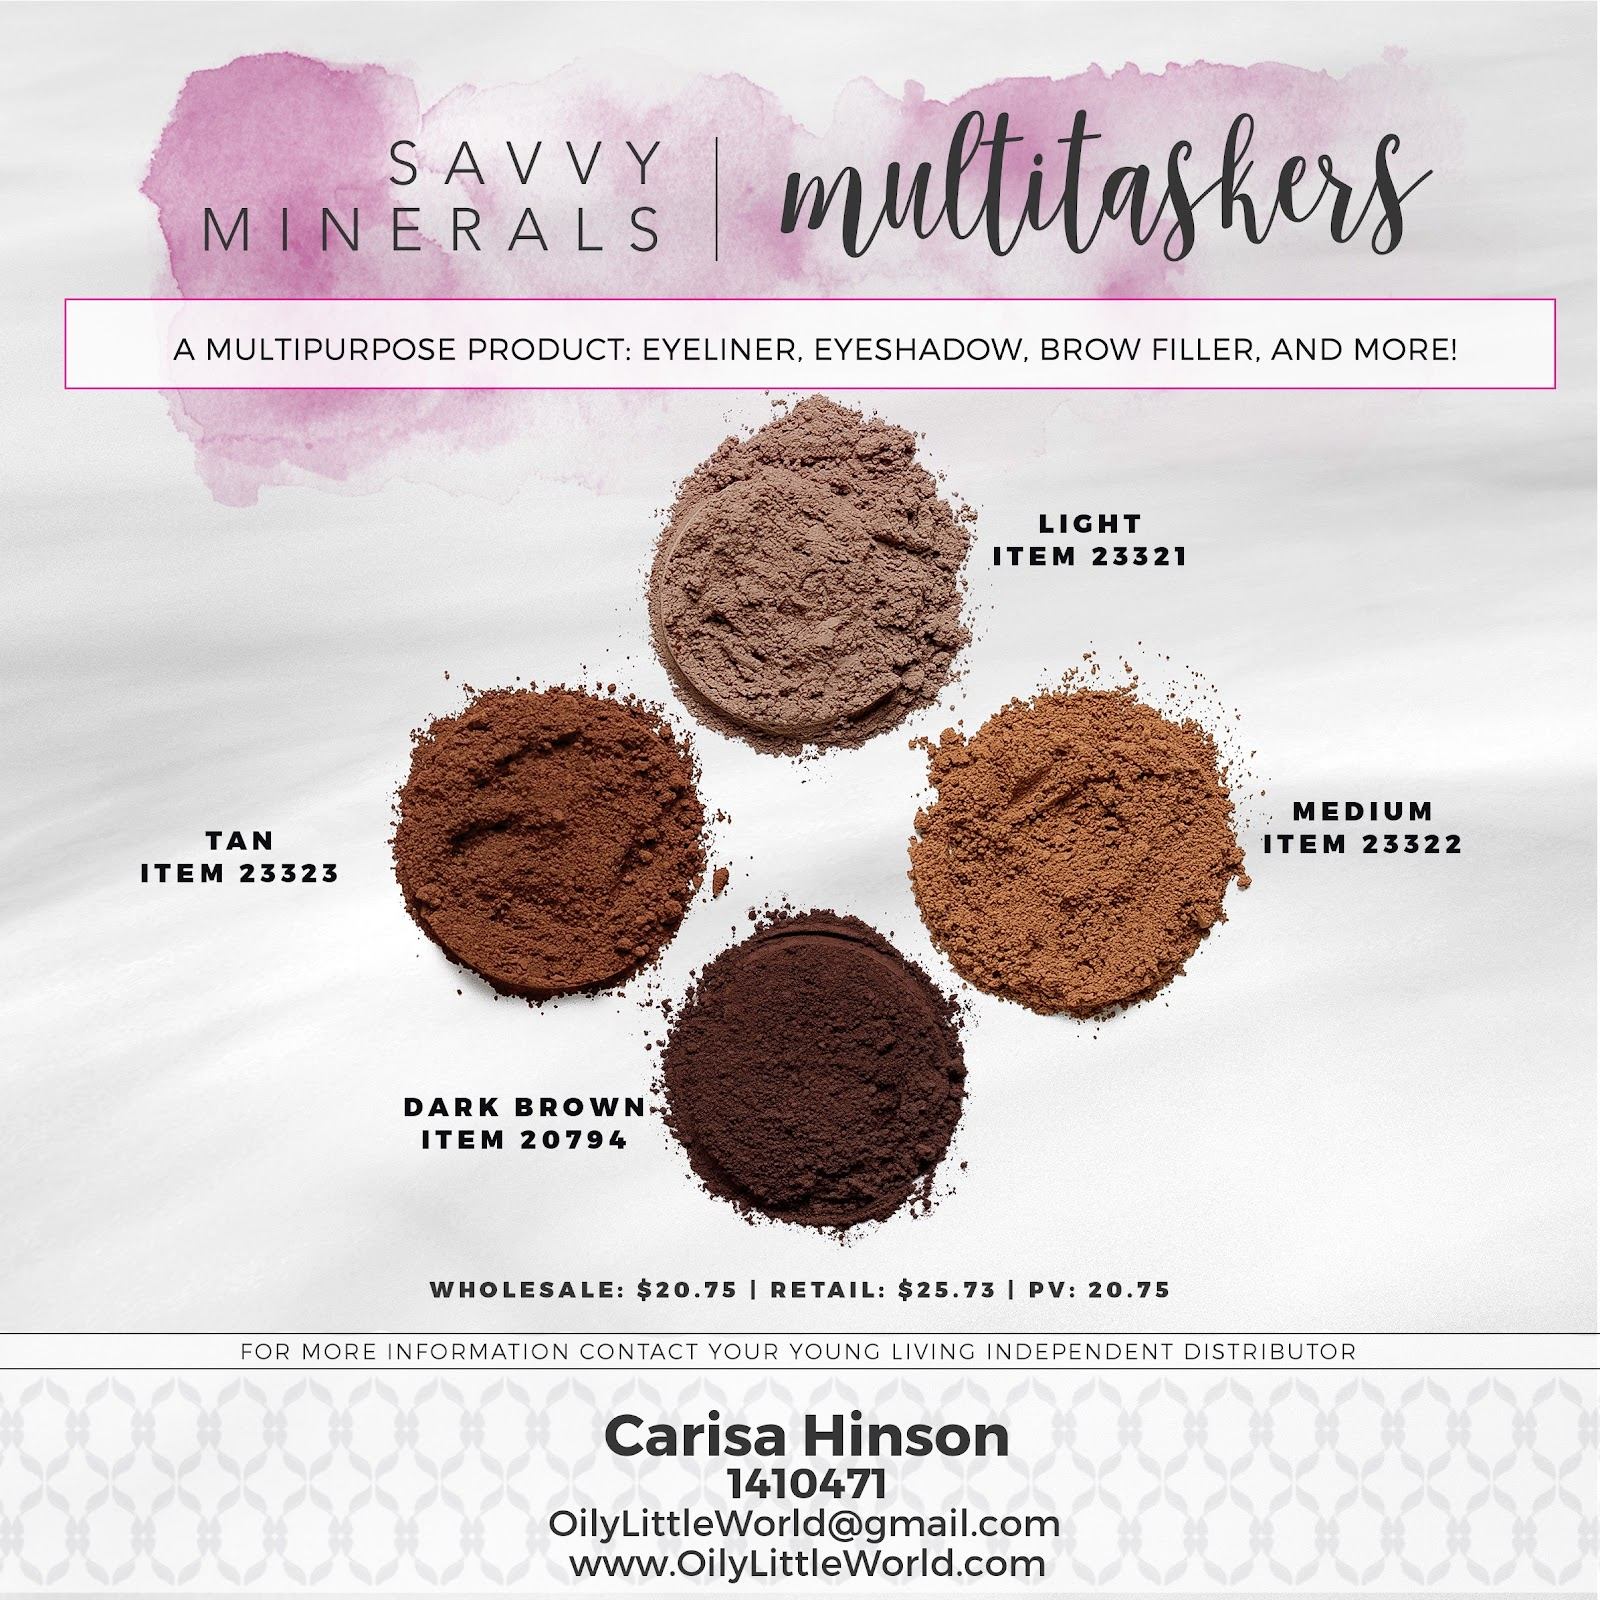 [23-Savvy-Minerals-Multitaskers%5B4%5D]